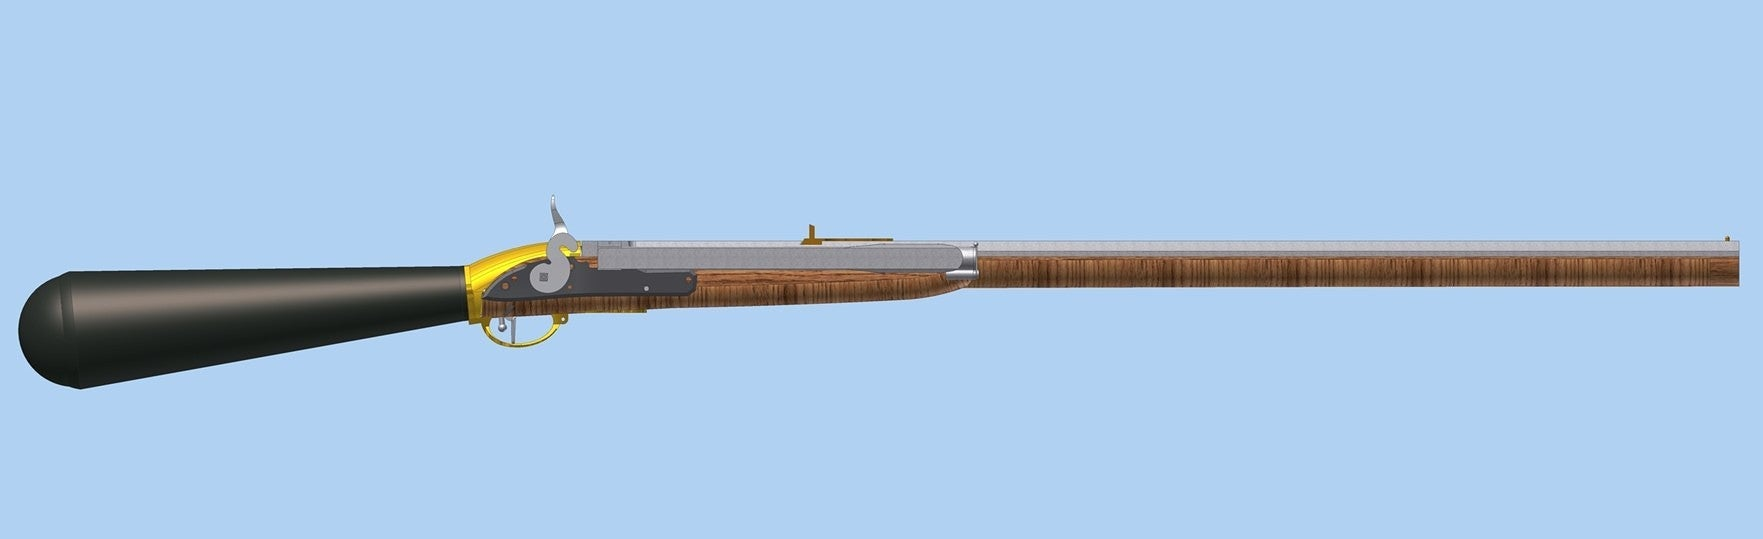 This 18th Century rifle had firepower that was way ahead of its time